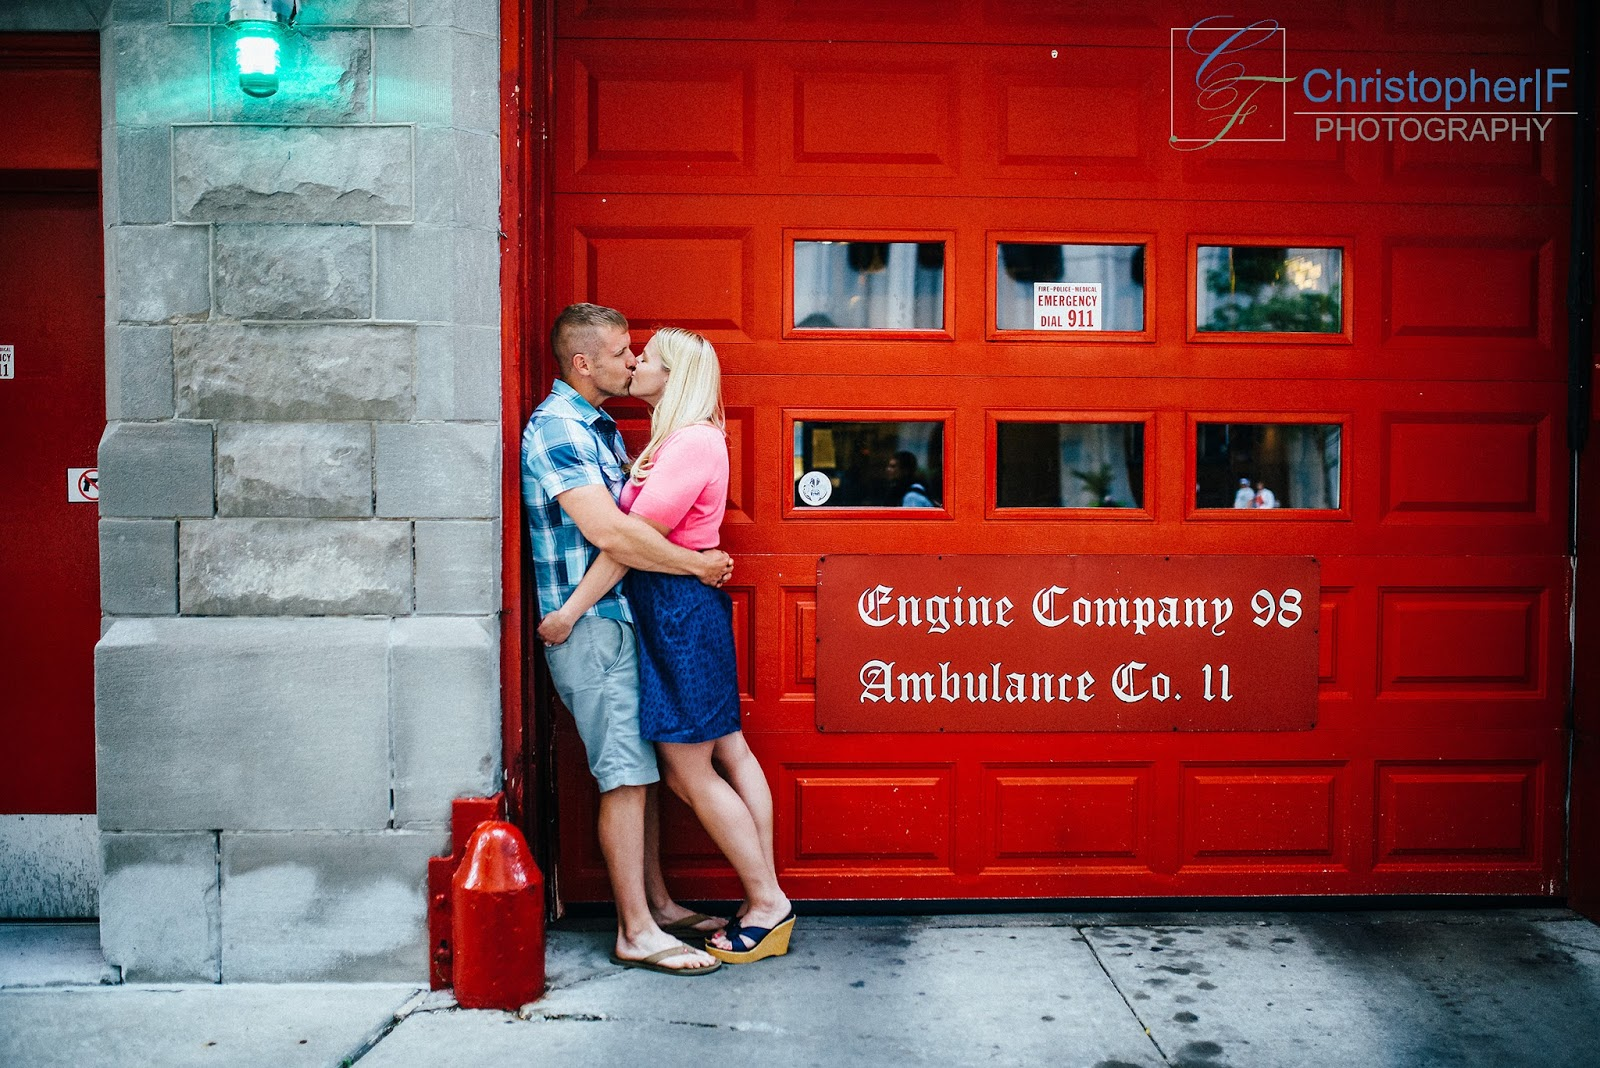 Chicago Fire Station Engagement Photo